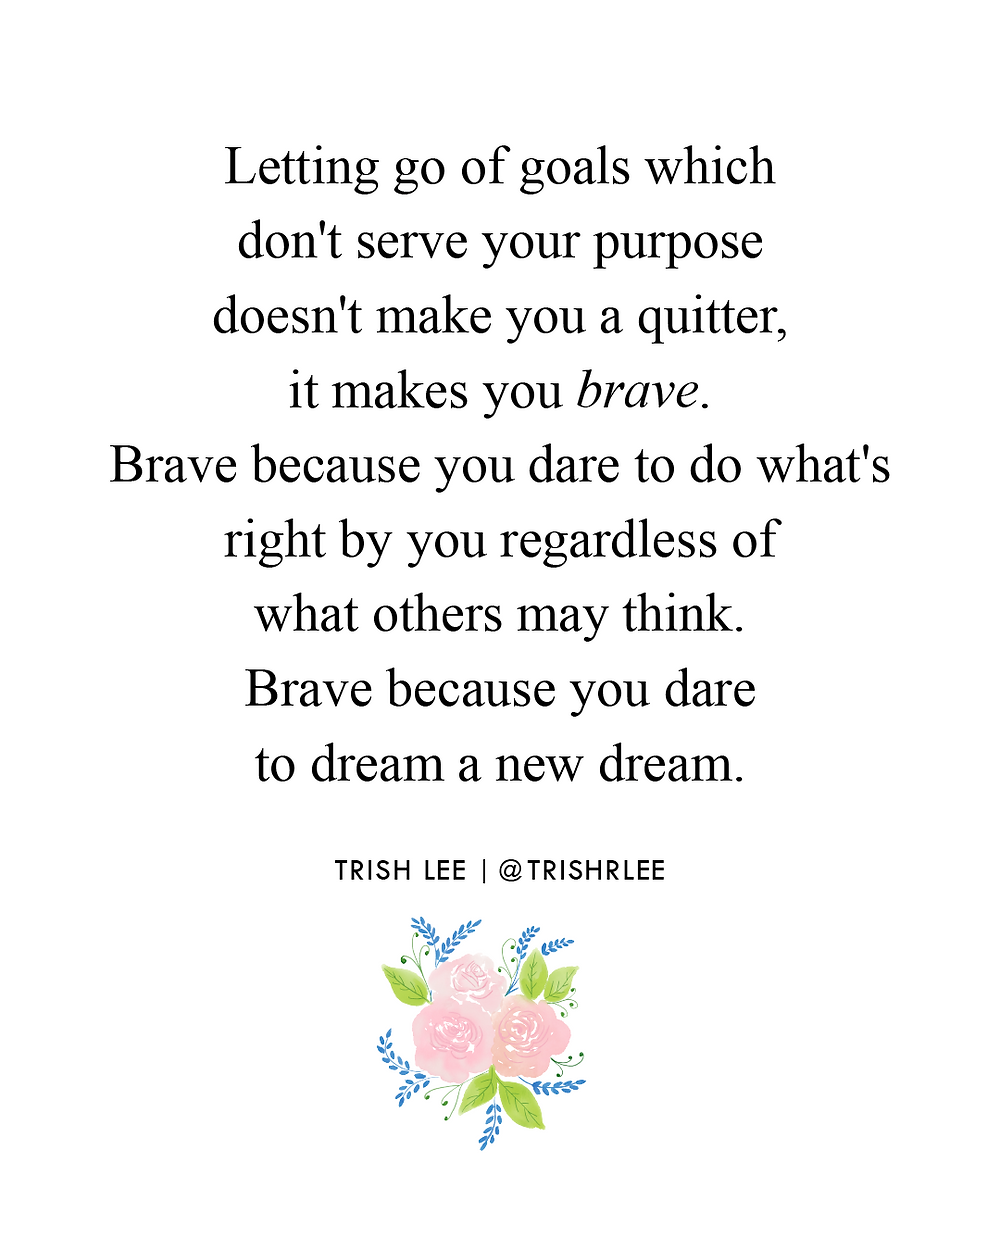 letting go of goals which don't serve your purpose doesn't make you a quitter, it makes you brave. Brave because you dare to do what's right by you regardless of what others may think-brave because you dare to dream a new dream